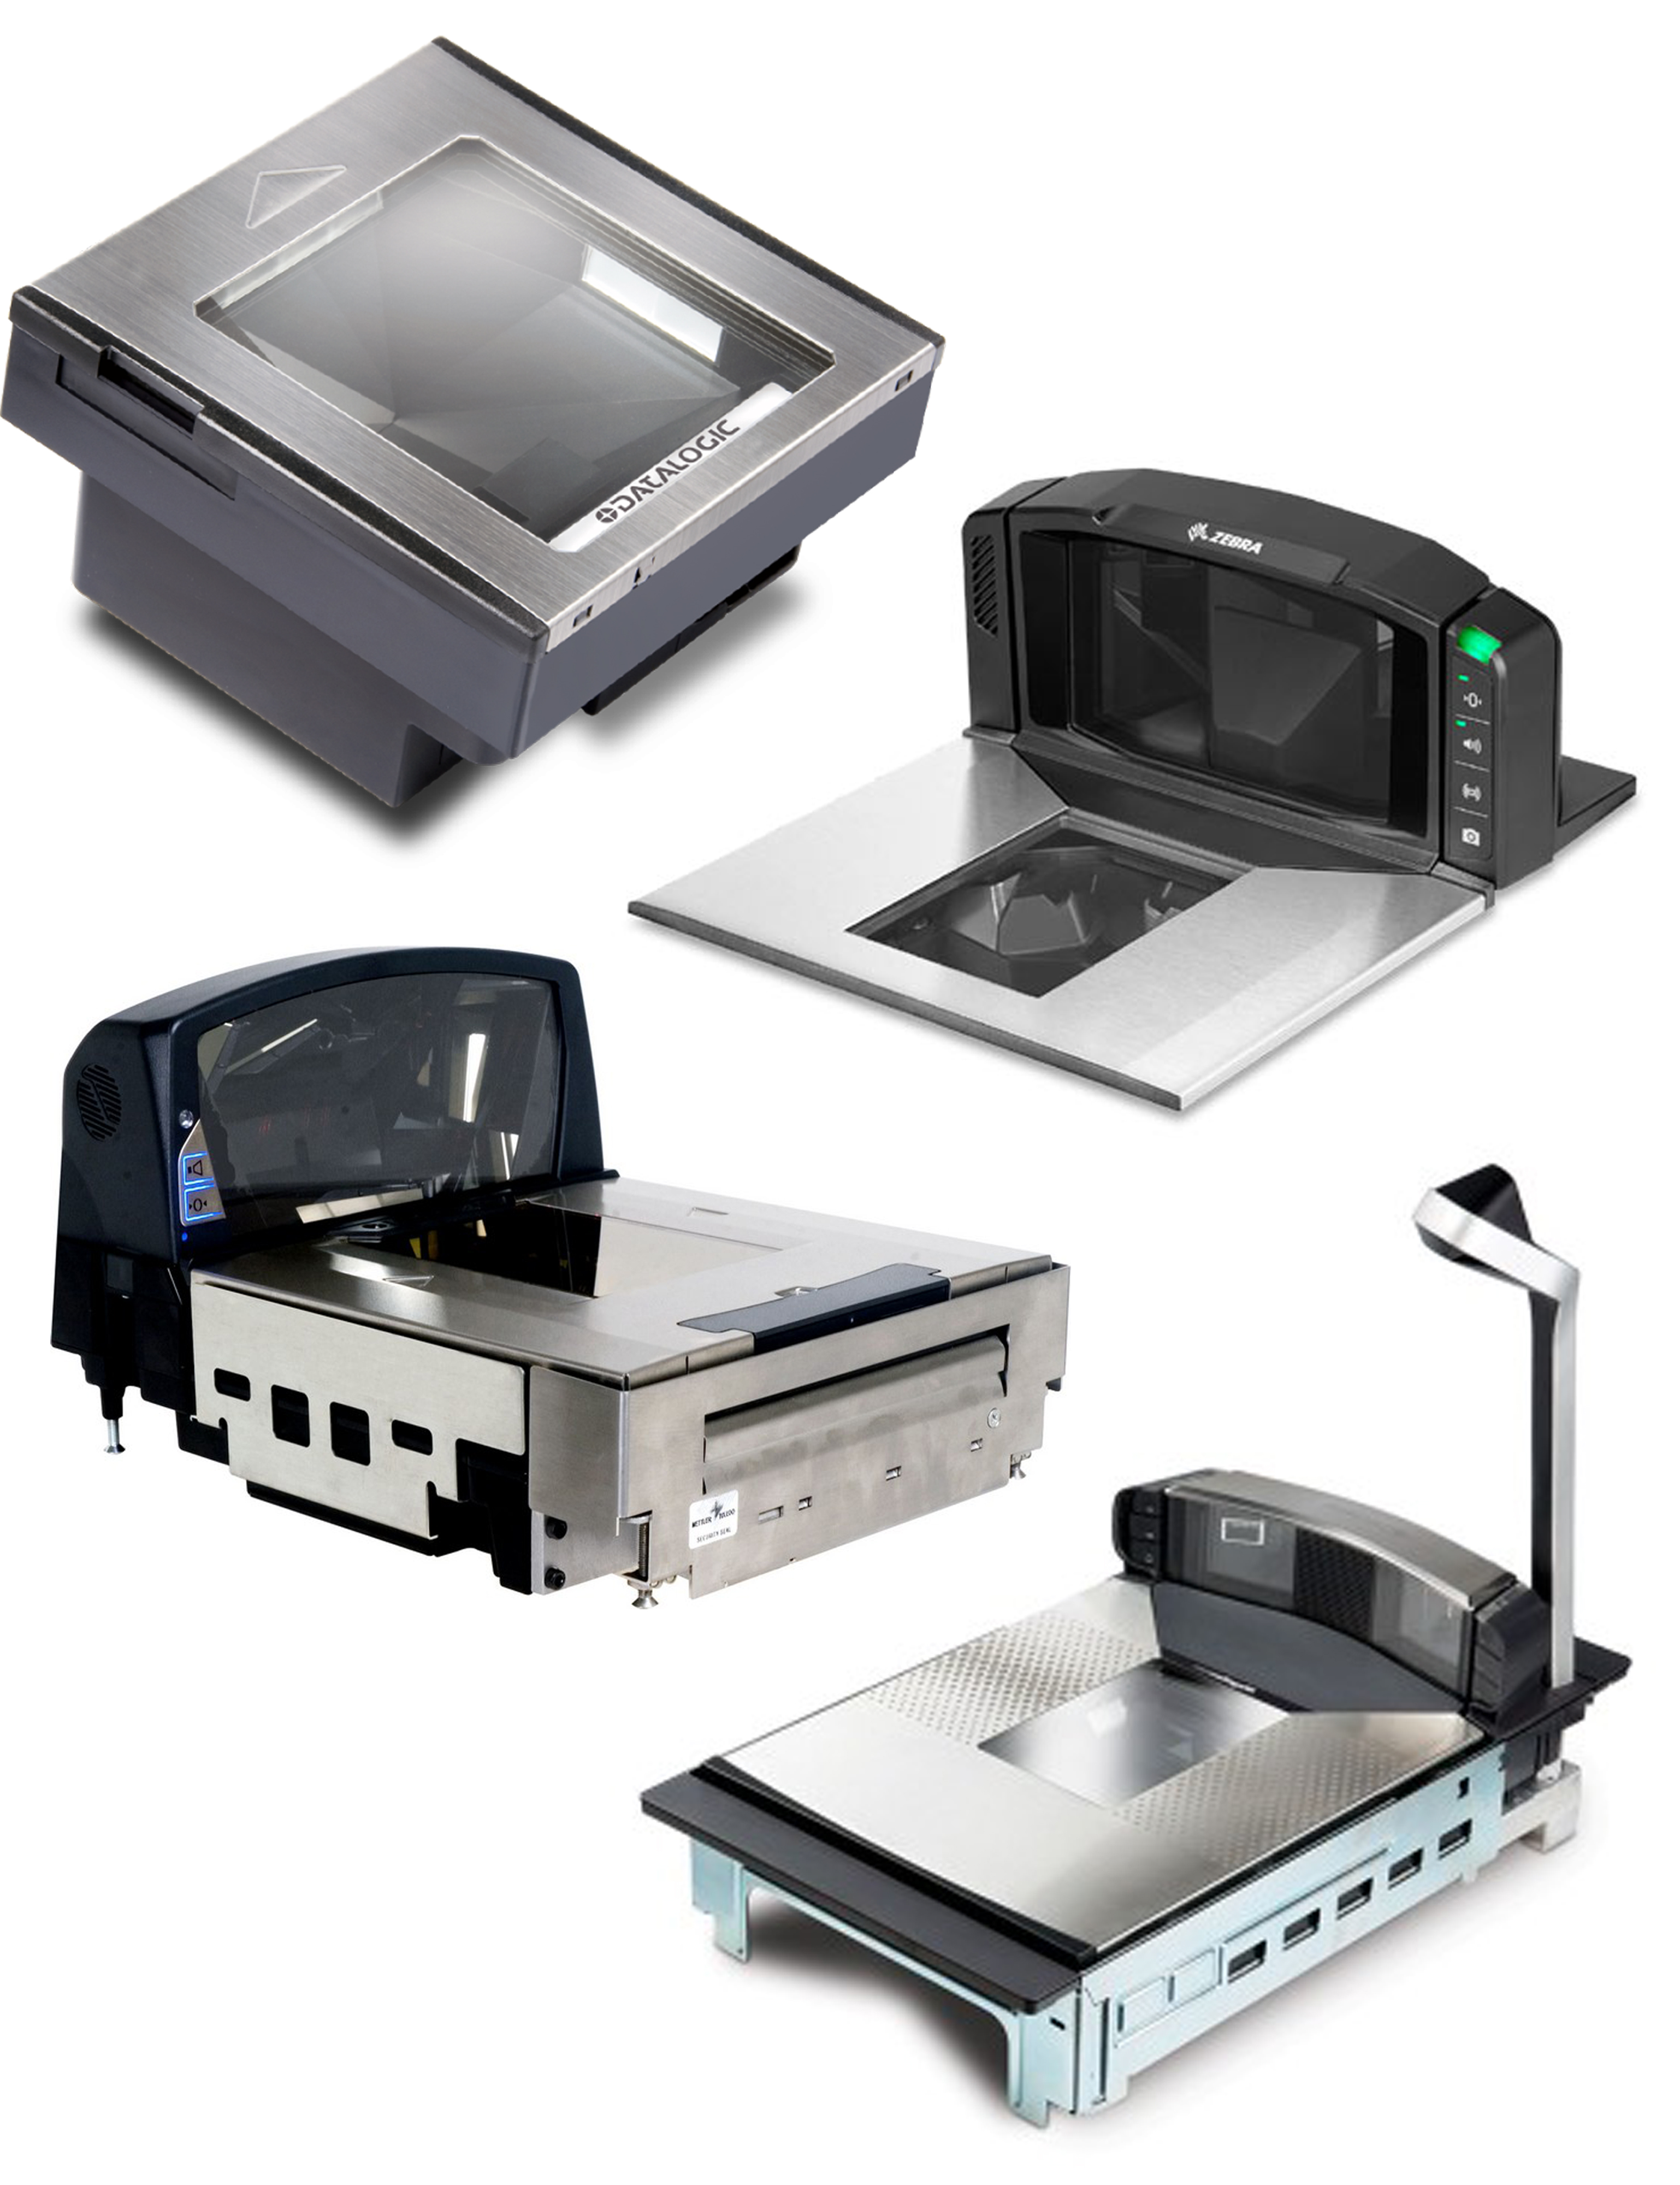 Barcode Scanners, Handheld, Wireless & More, Fast Delivery